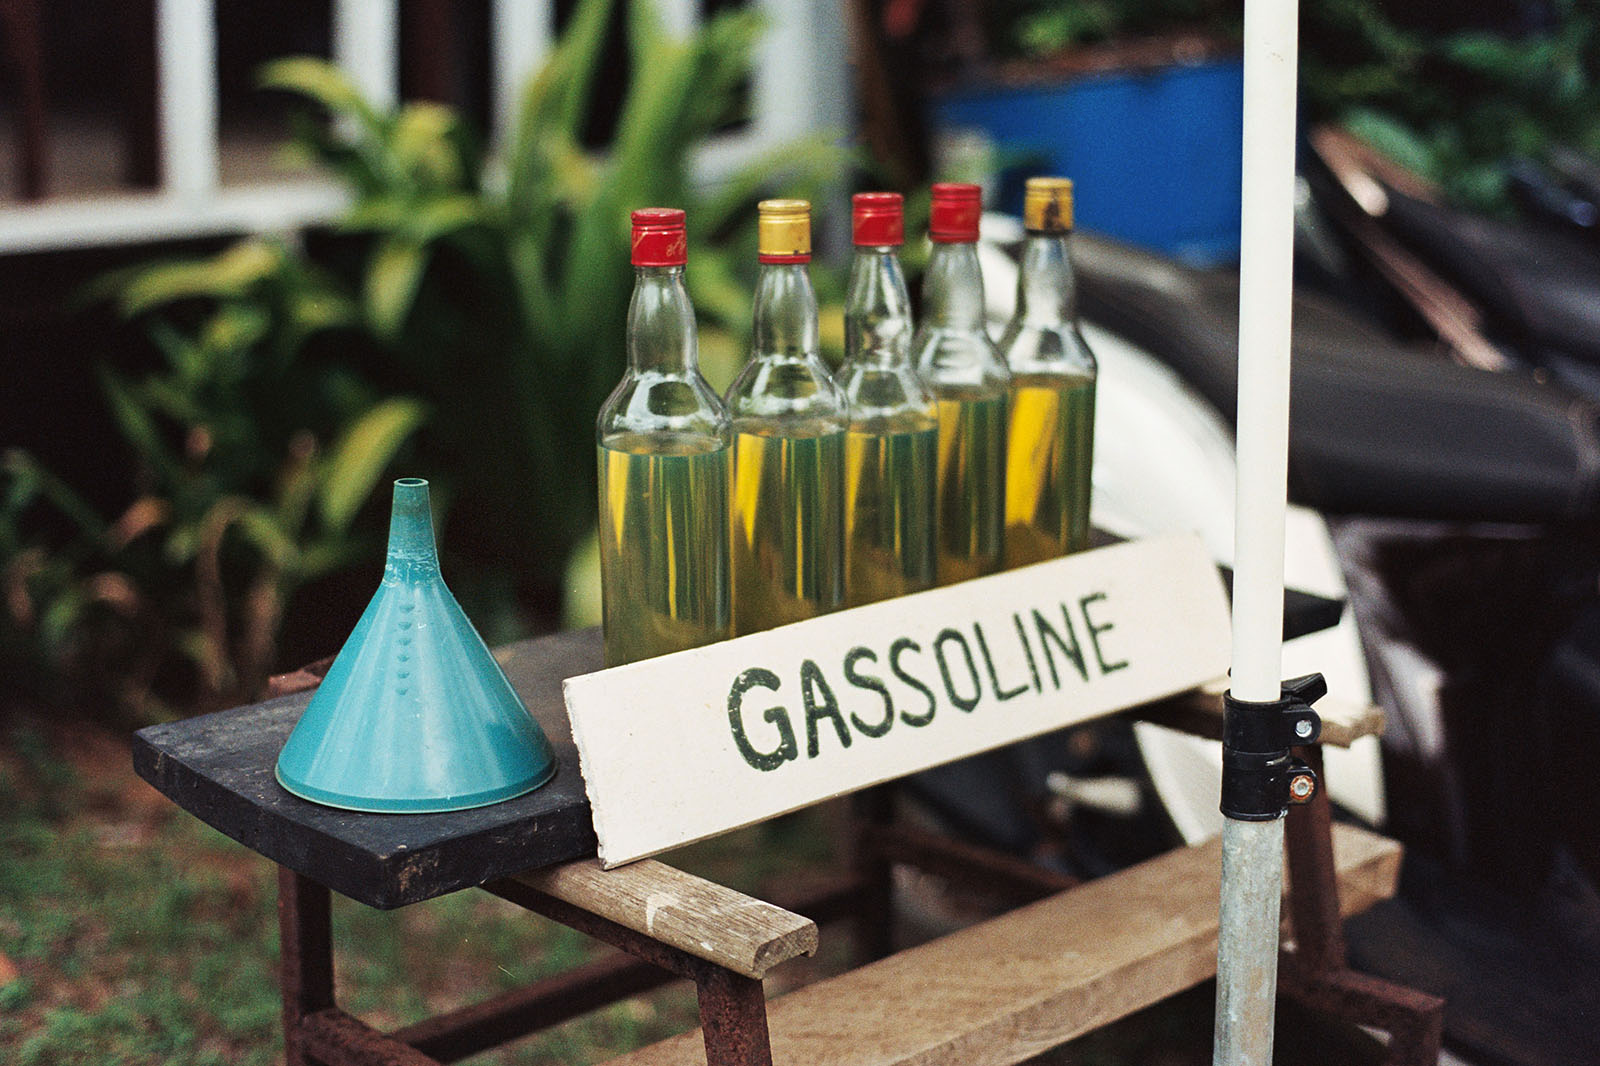 Gasoline for sale in Koh Mak | Thailand Travel Photos